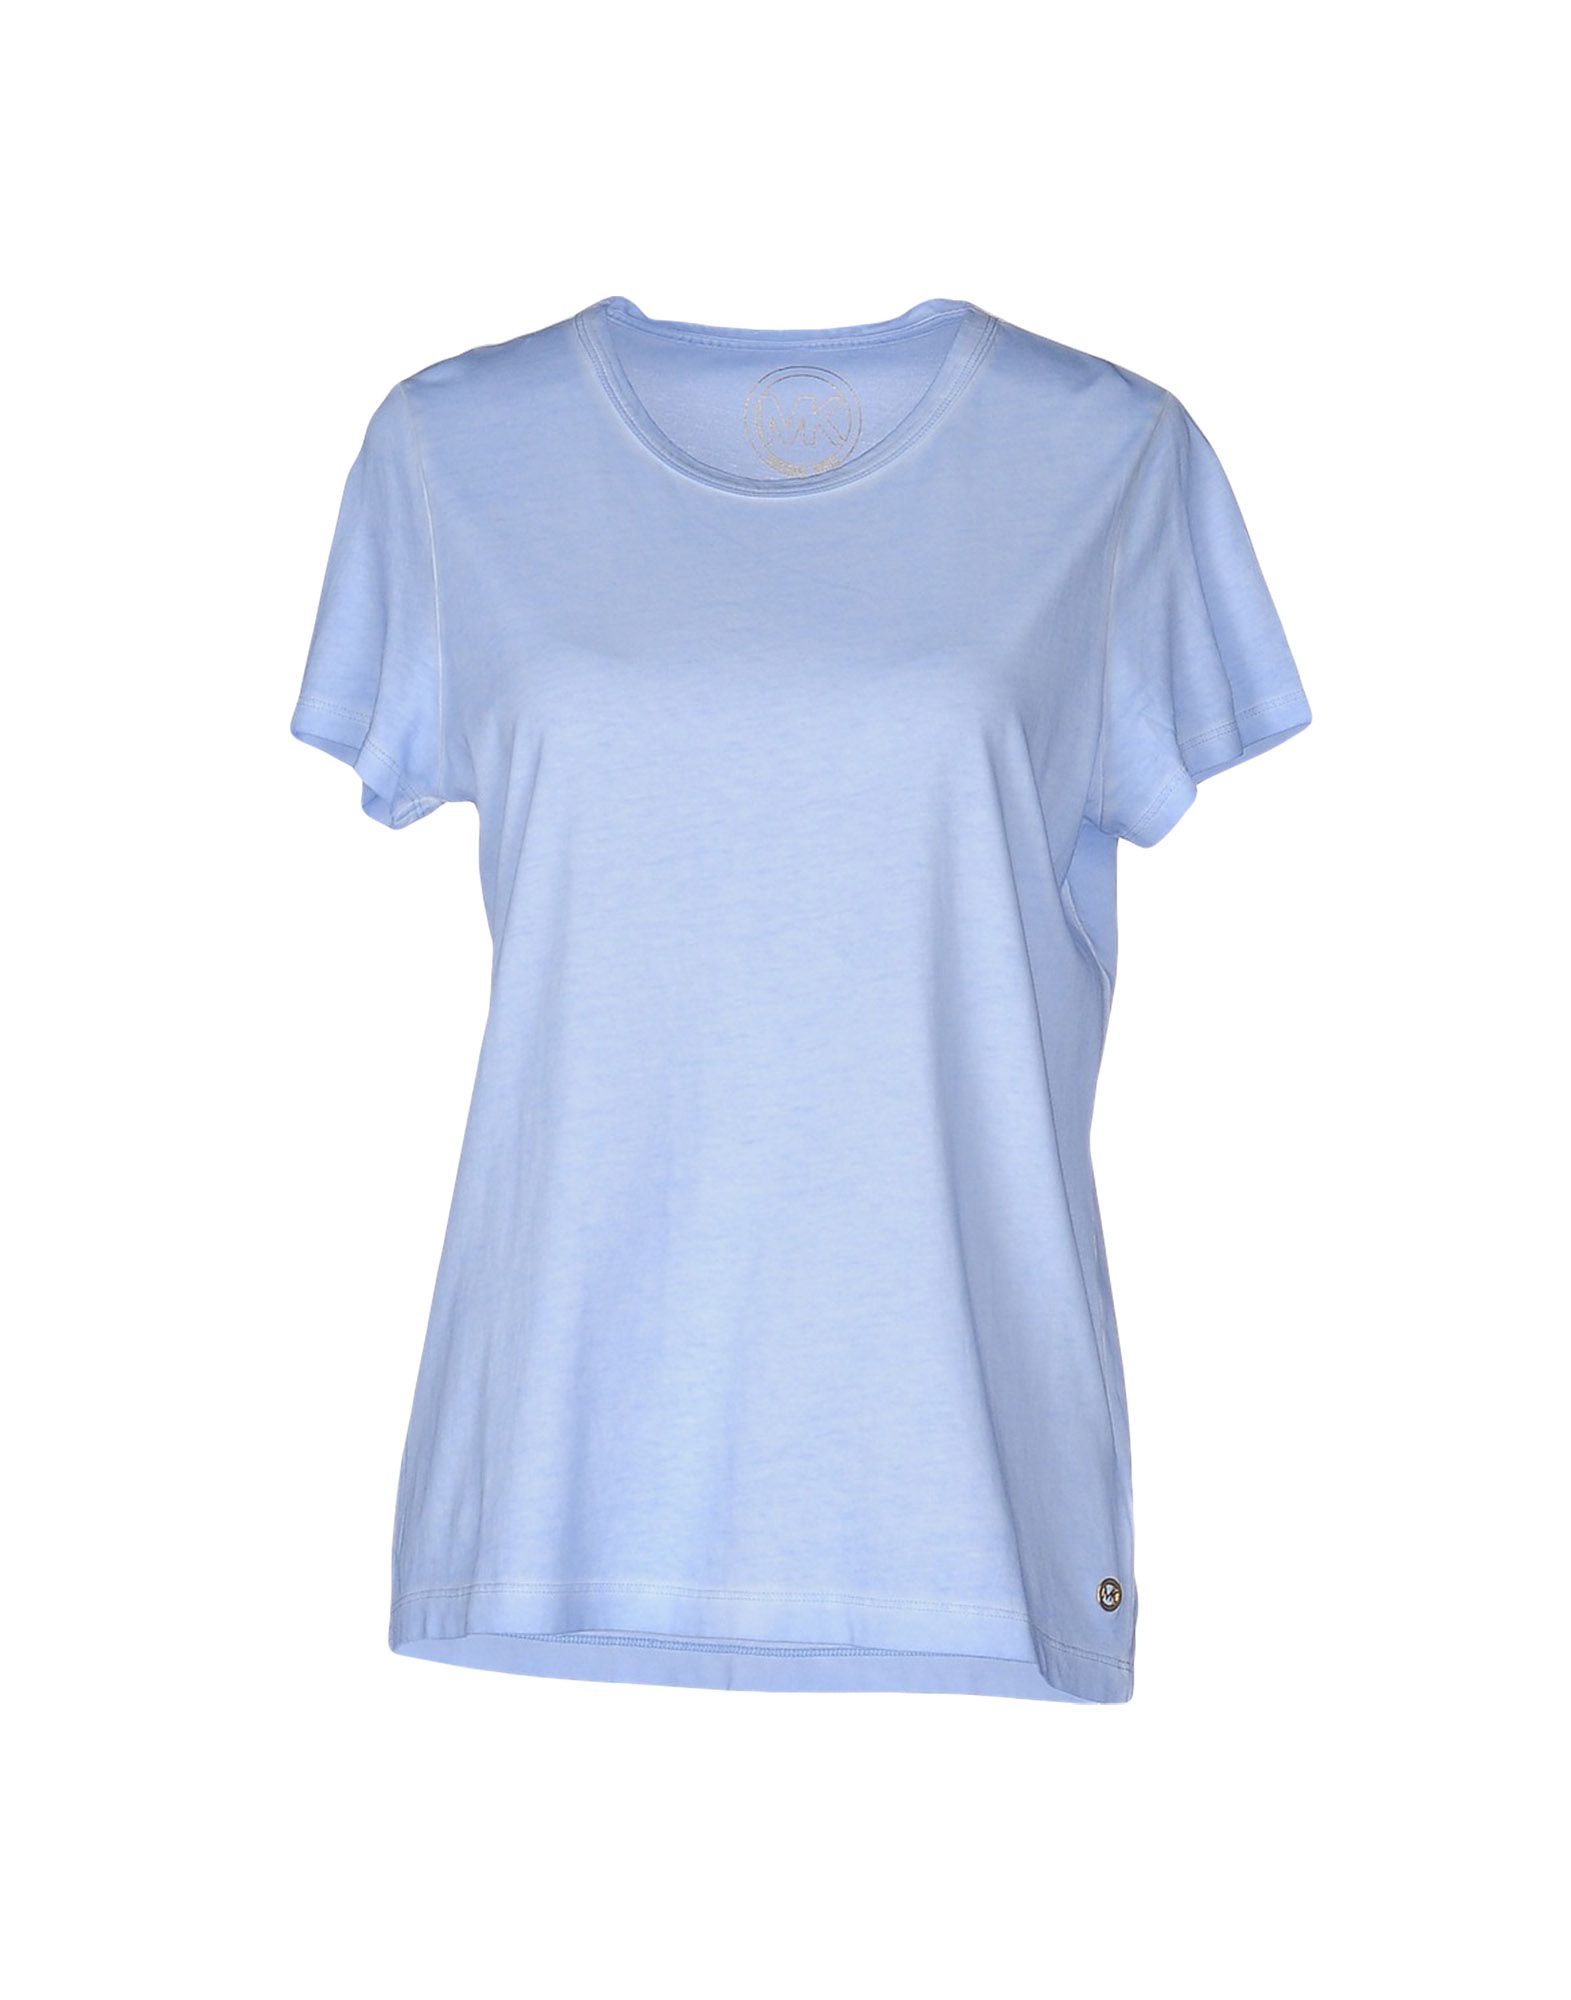 michael kors female michael kors tshirts